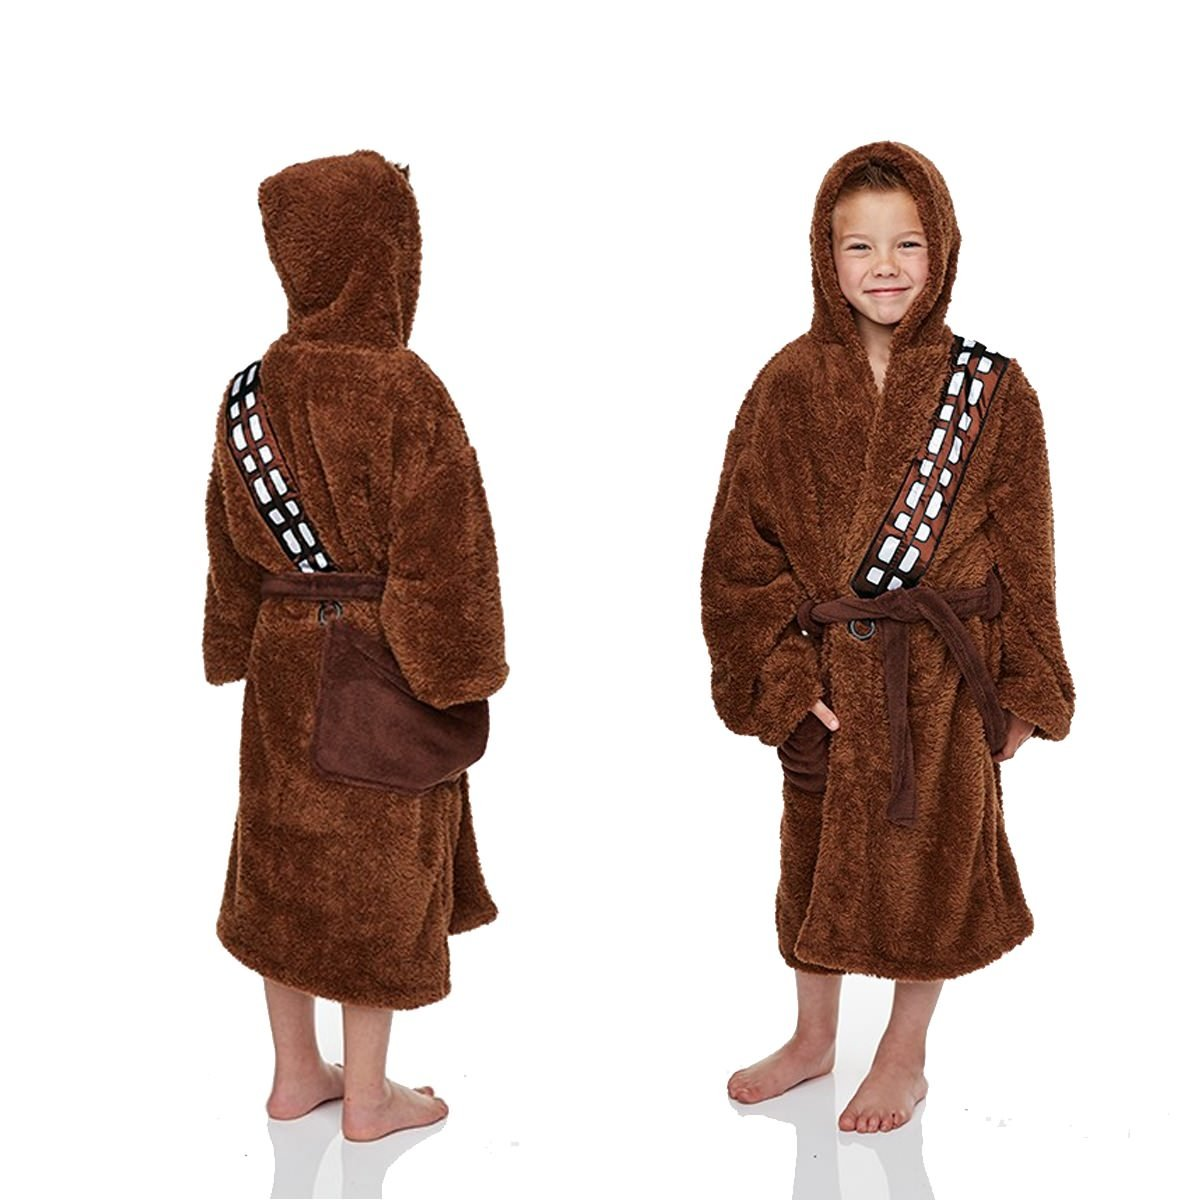 Star Wars Dressing Gown Kids - Best Seller Dress and Gown Review